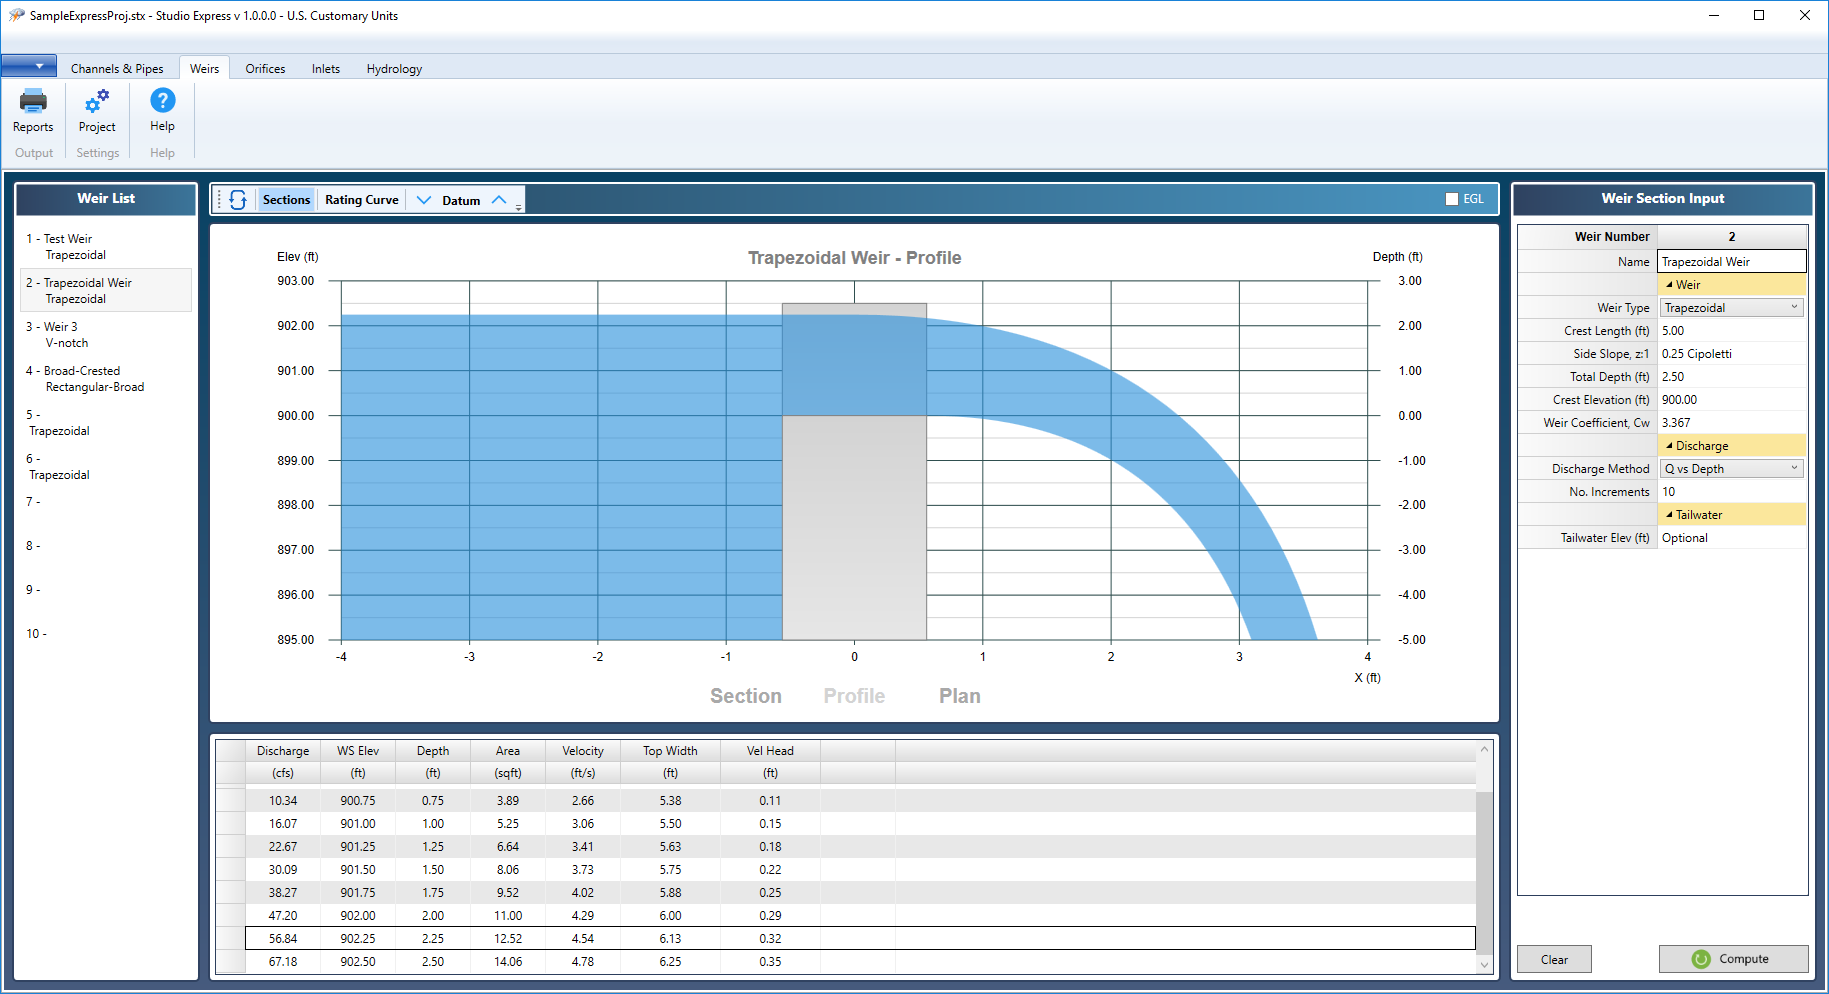 Hydraulics and Hydrology Software | Studio Express